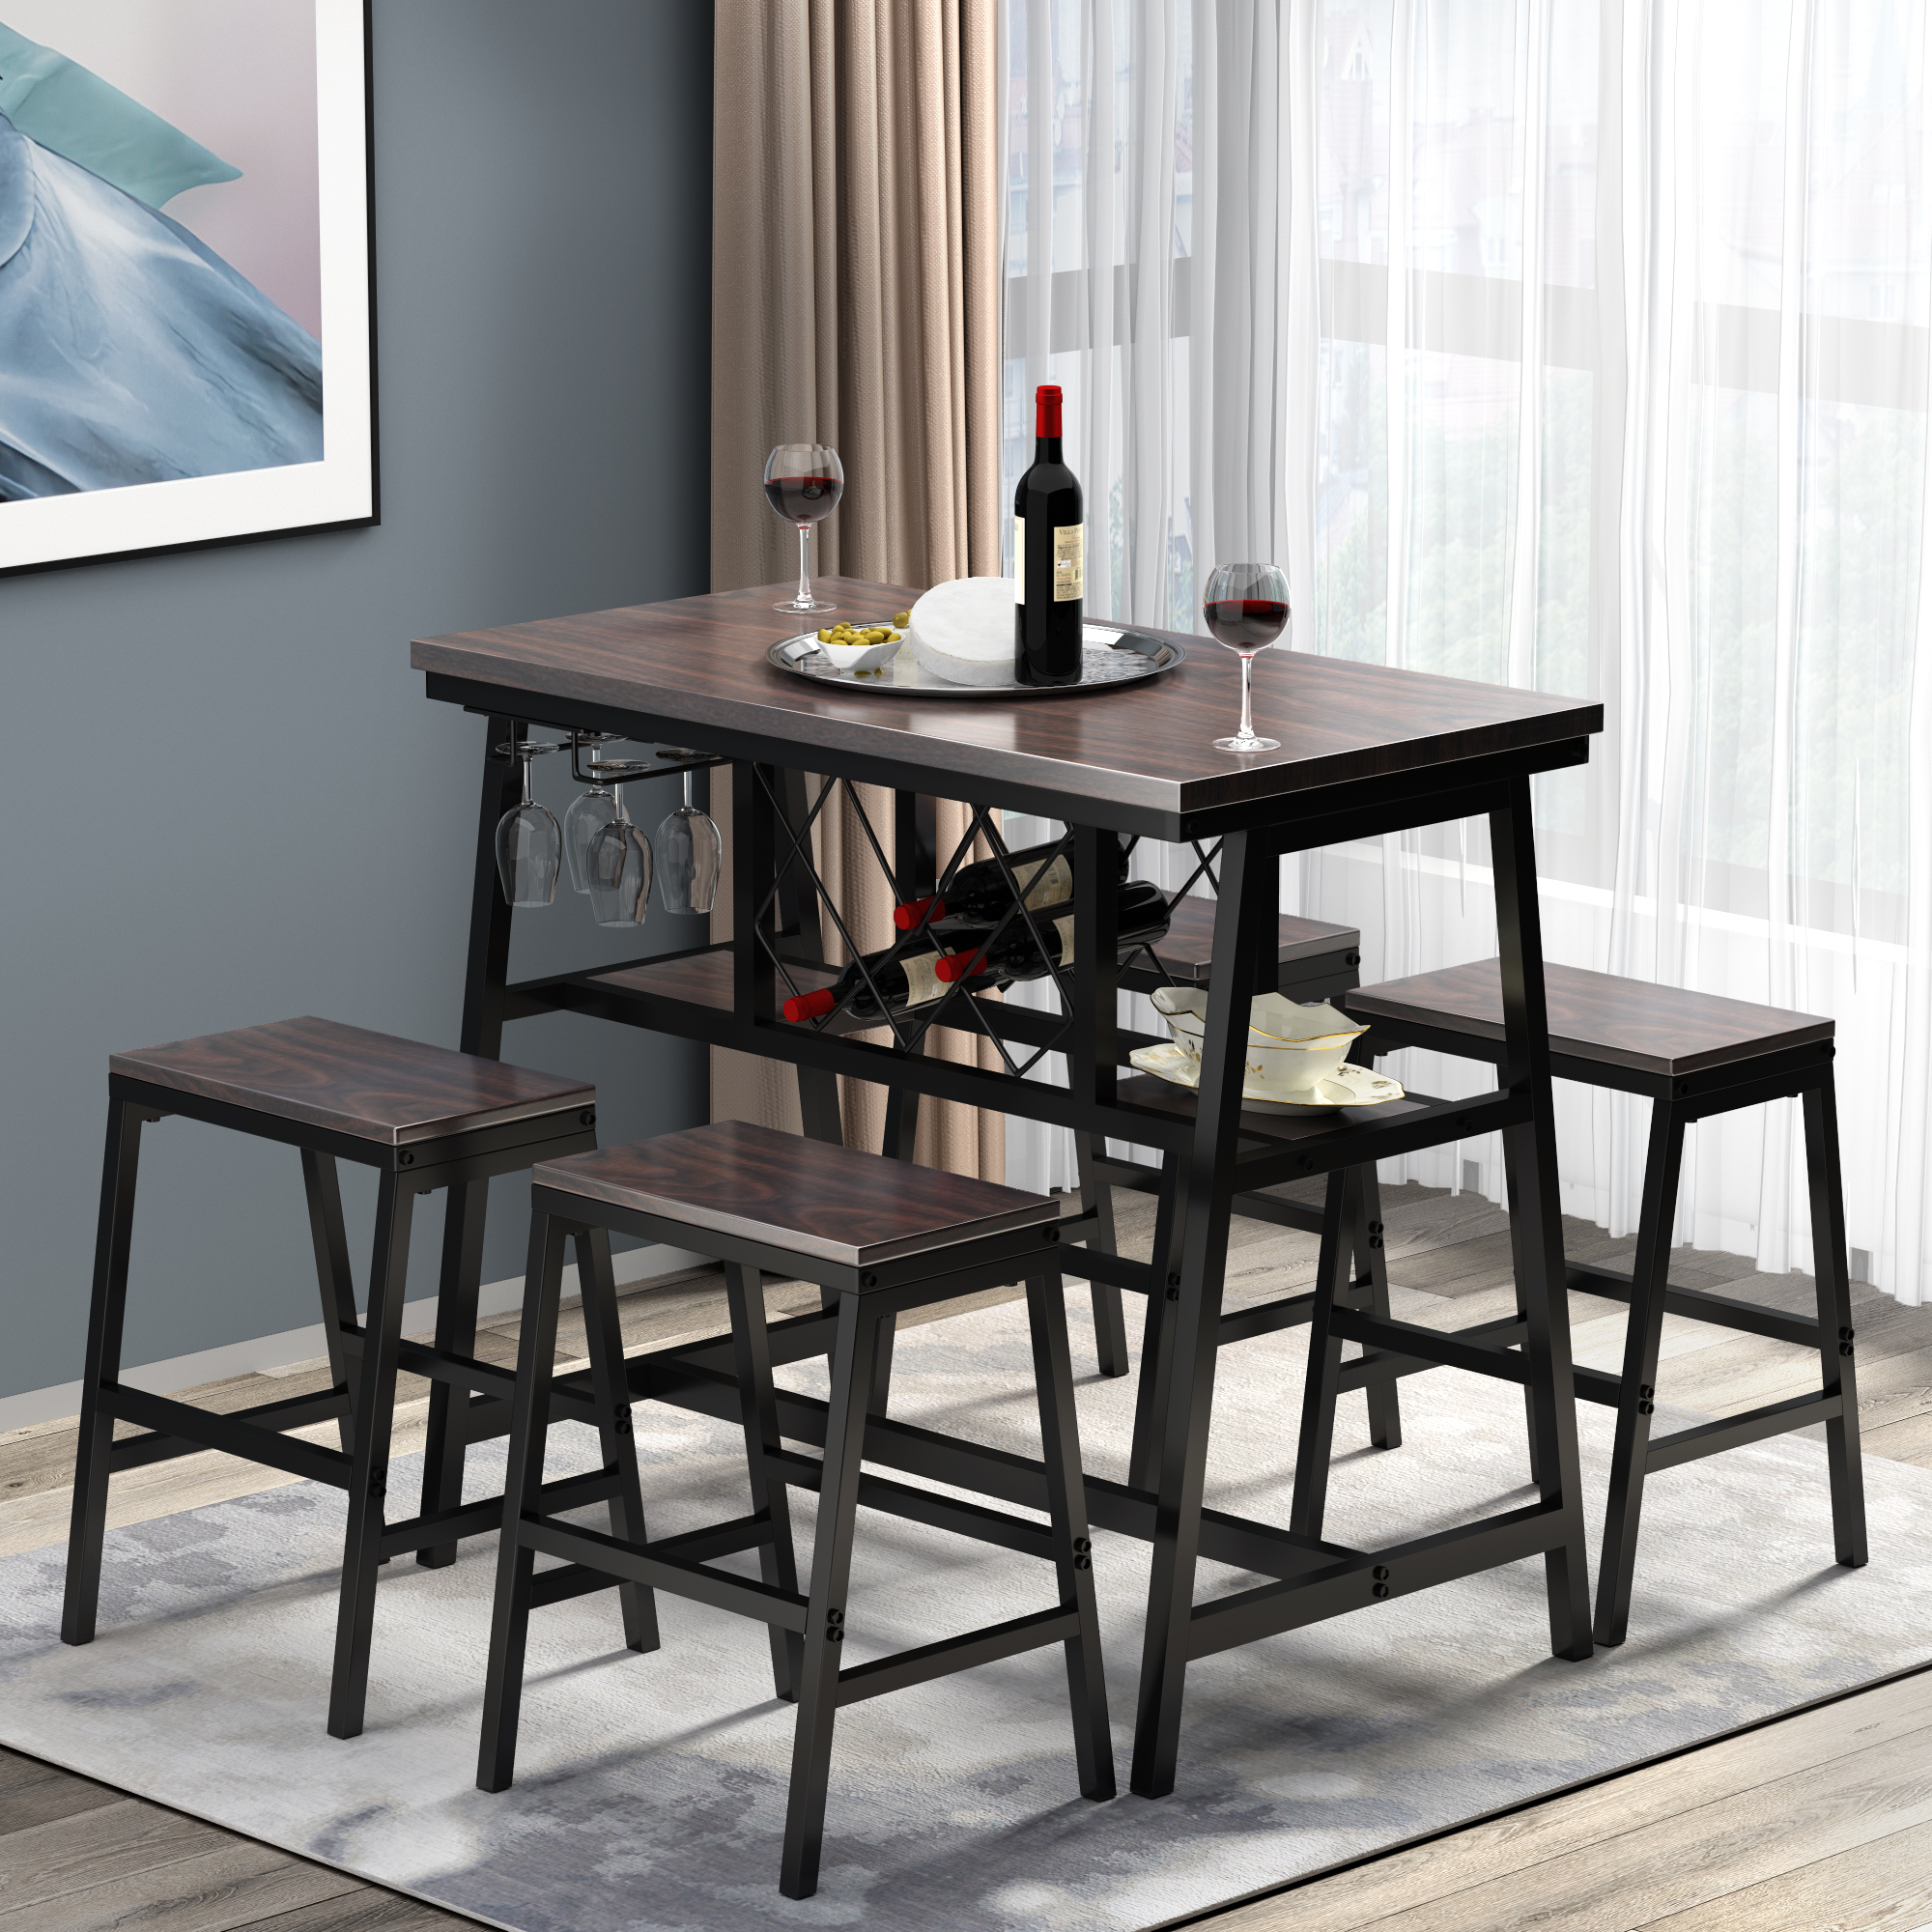 5 piece counter height dining sets industrial metal kitchen dining table set with 4 stools bar dining table set with wine rack and glass holder